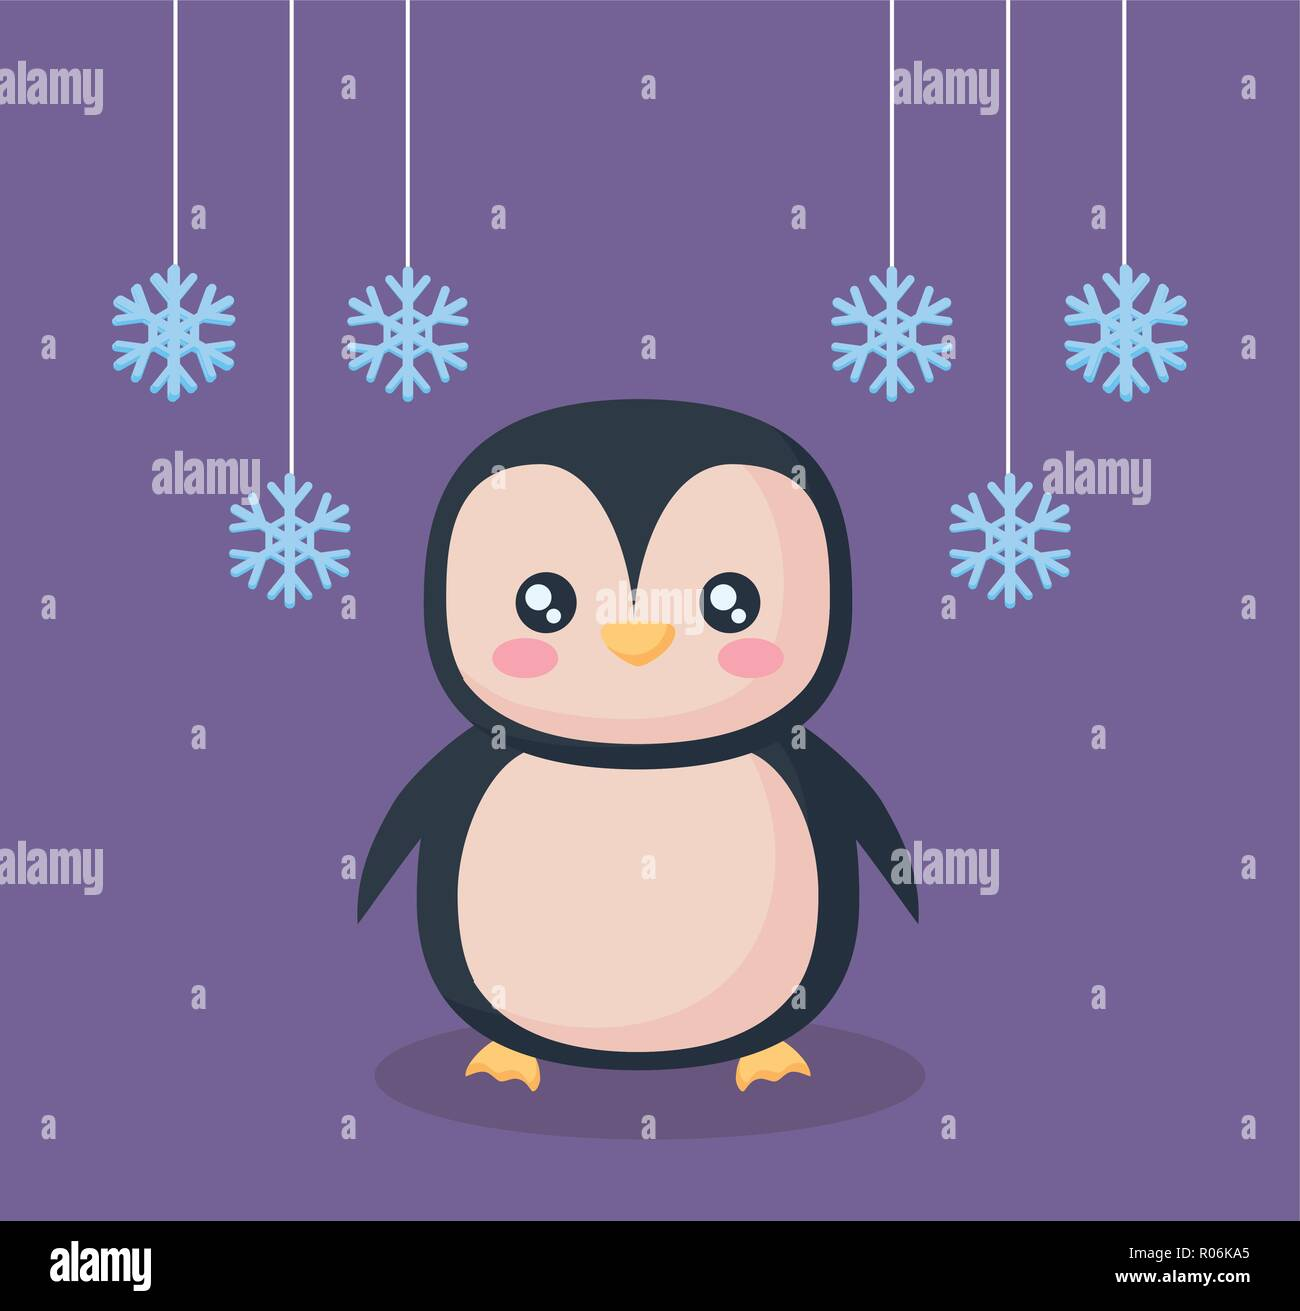 penguin with snowflakes character vector illustration design - Stock Vector